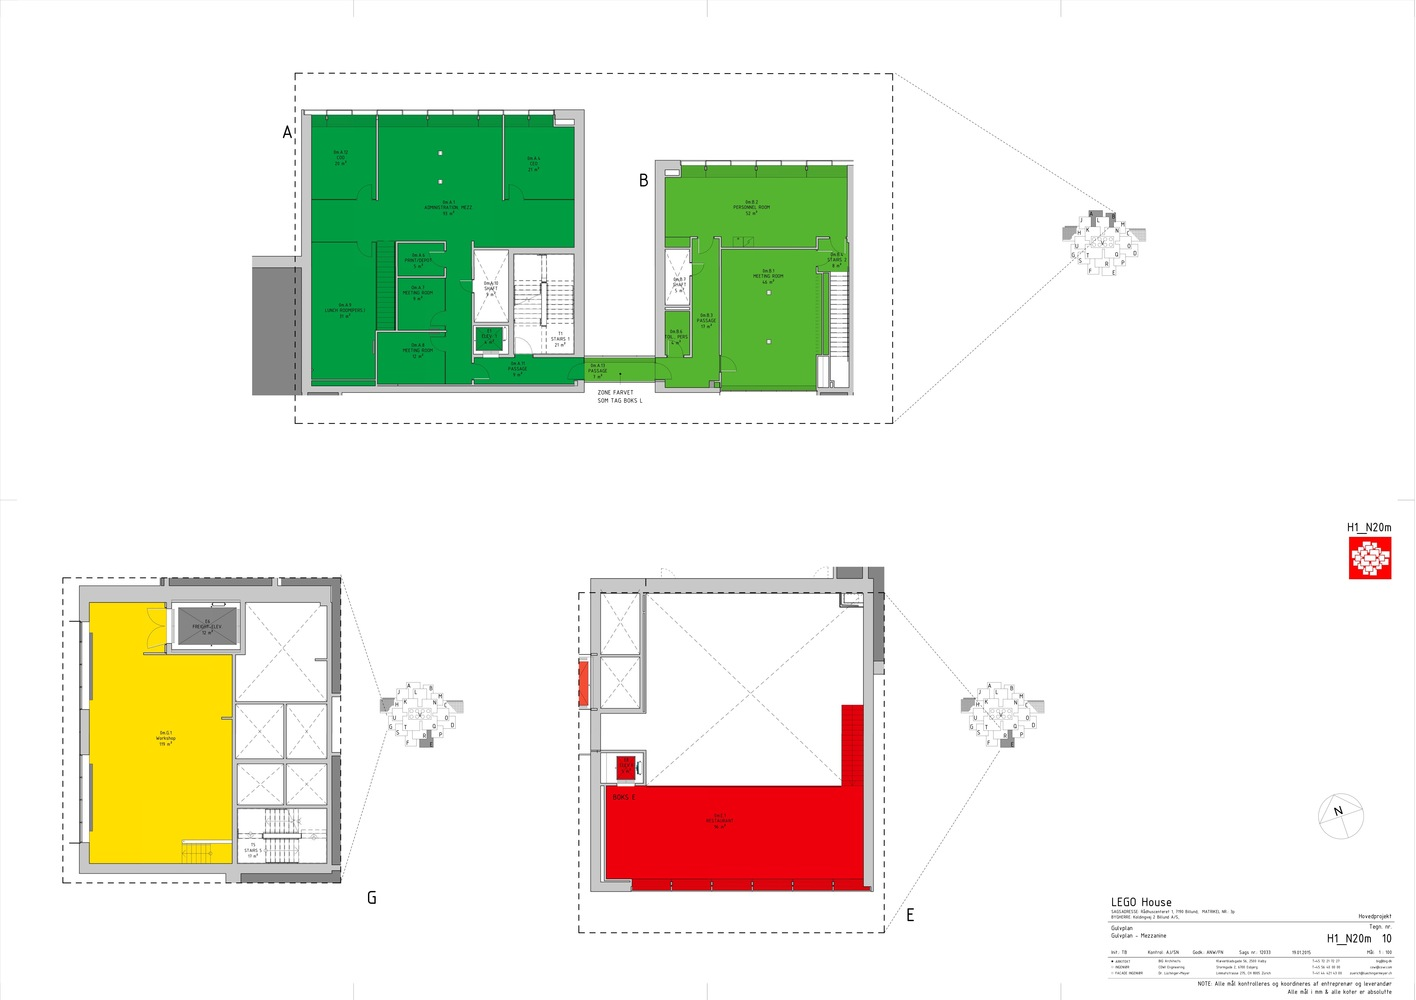 LEGO House,Mezzanine Floor Plan